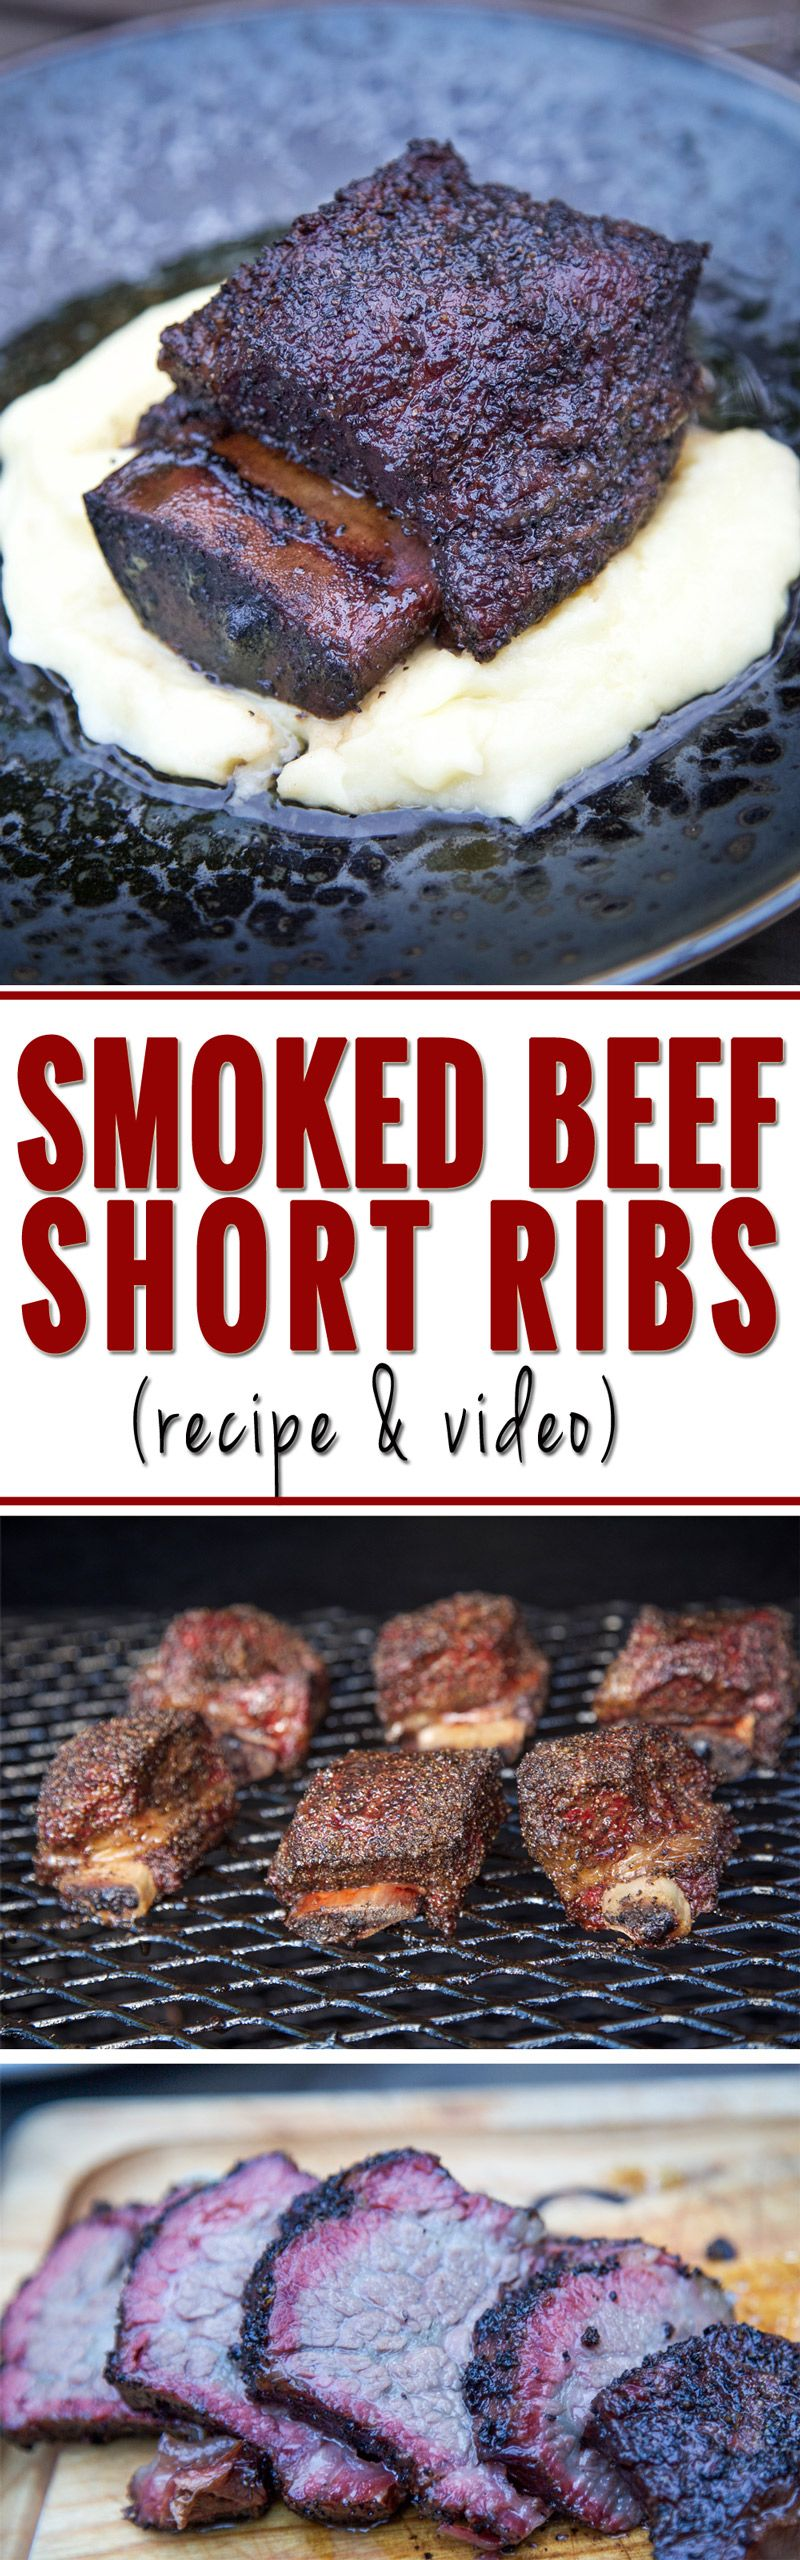 Smoked Beef Short Ribs With Red Wine Braise Vindulge Recipe Smoked Beef Short Ribs Smoked Beef Beef Short Ribs